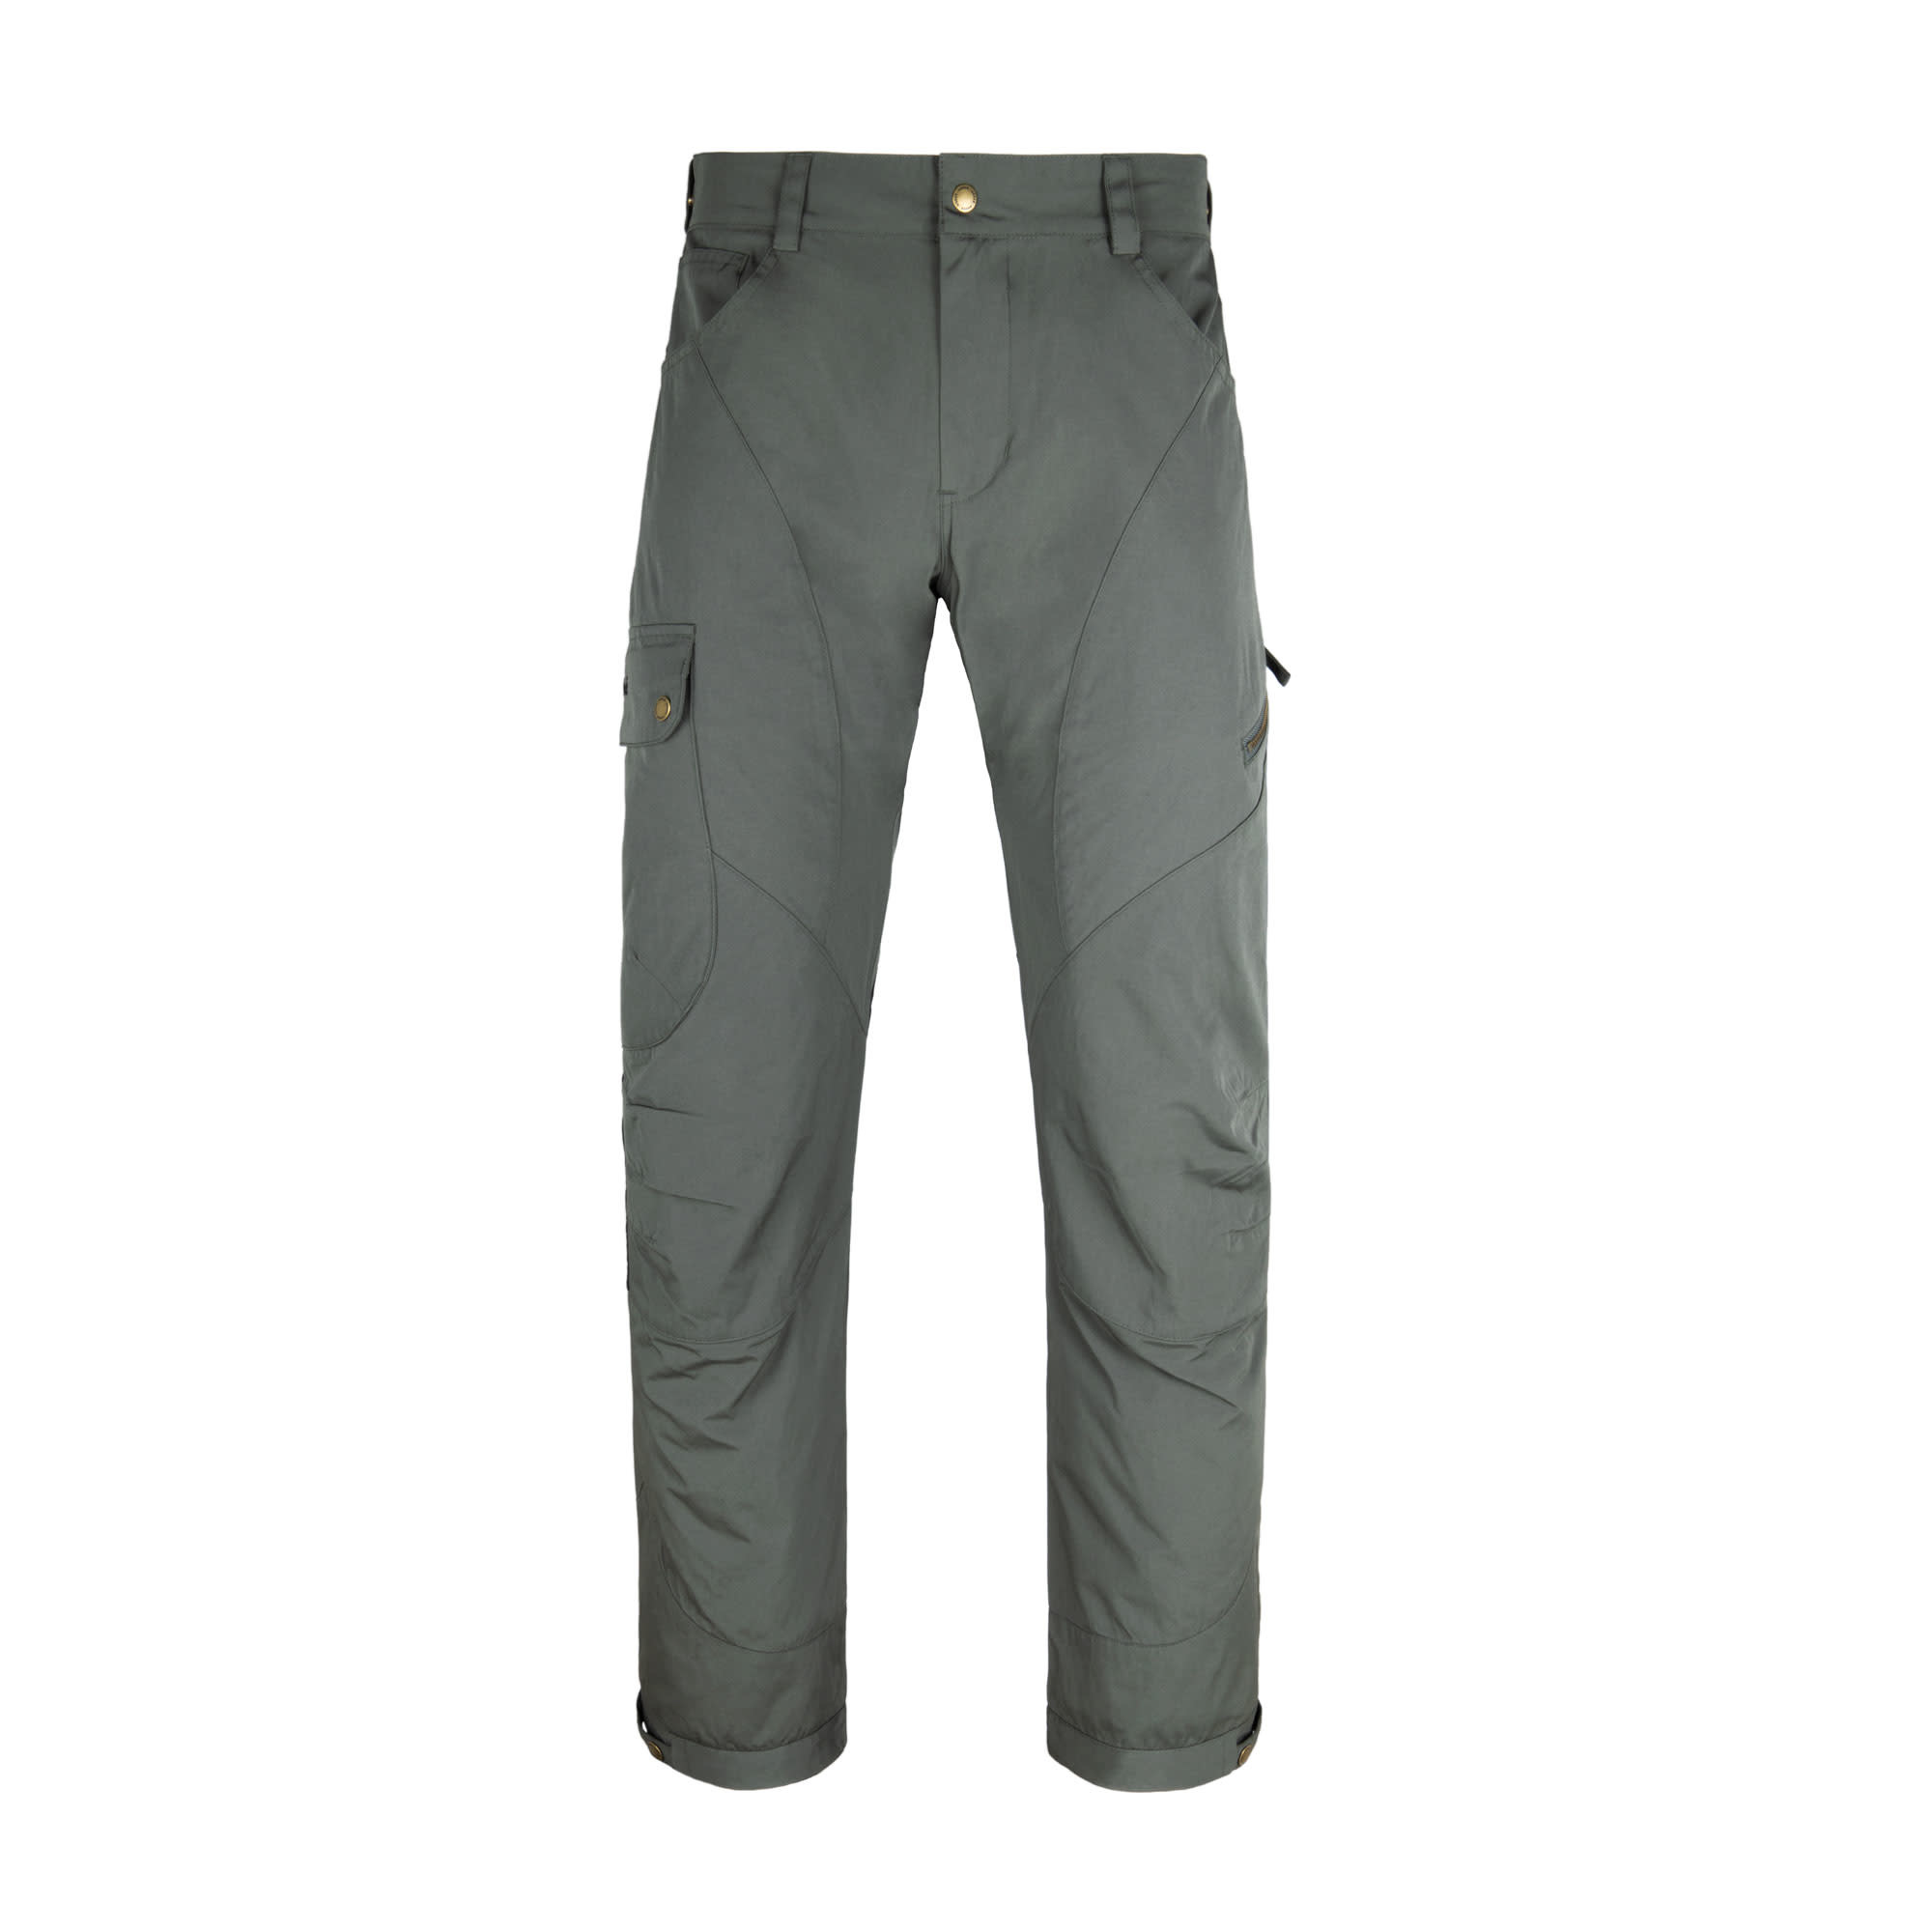 Outdoor Pants Charcoal & Black